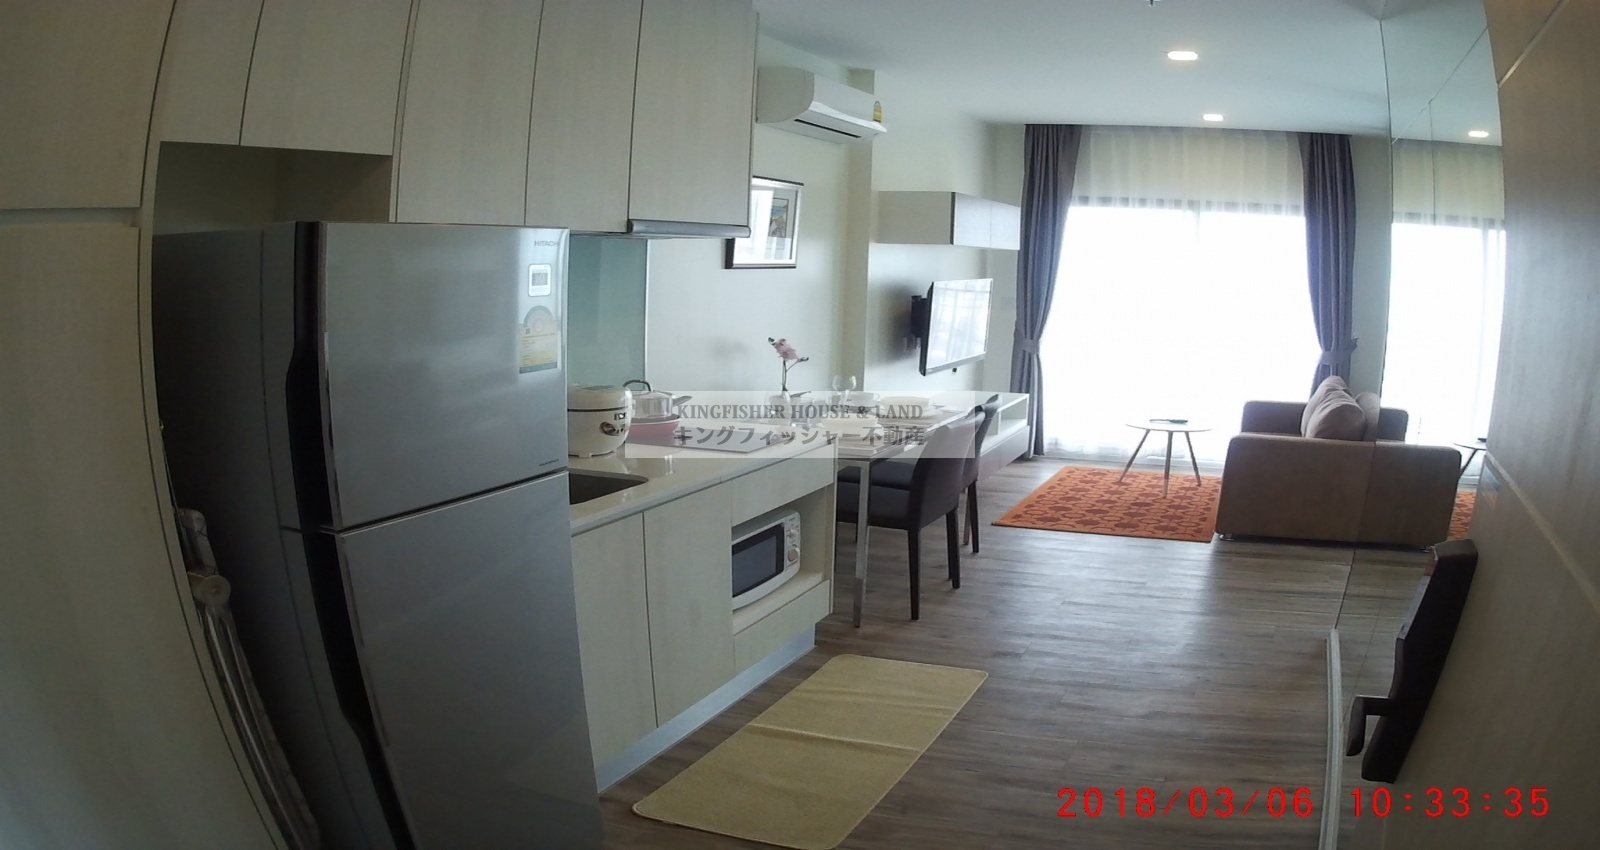 1 Bedrooms, Condominium, For Rent, 1 Bathrooms, Listing ID 1213, Sriracha, Thailand, 20110,